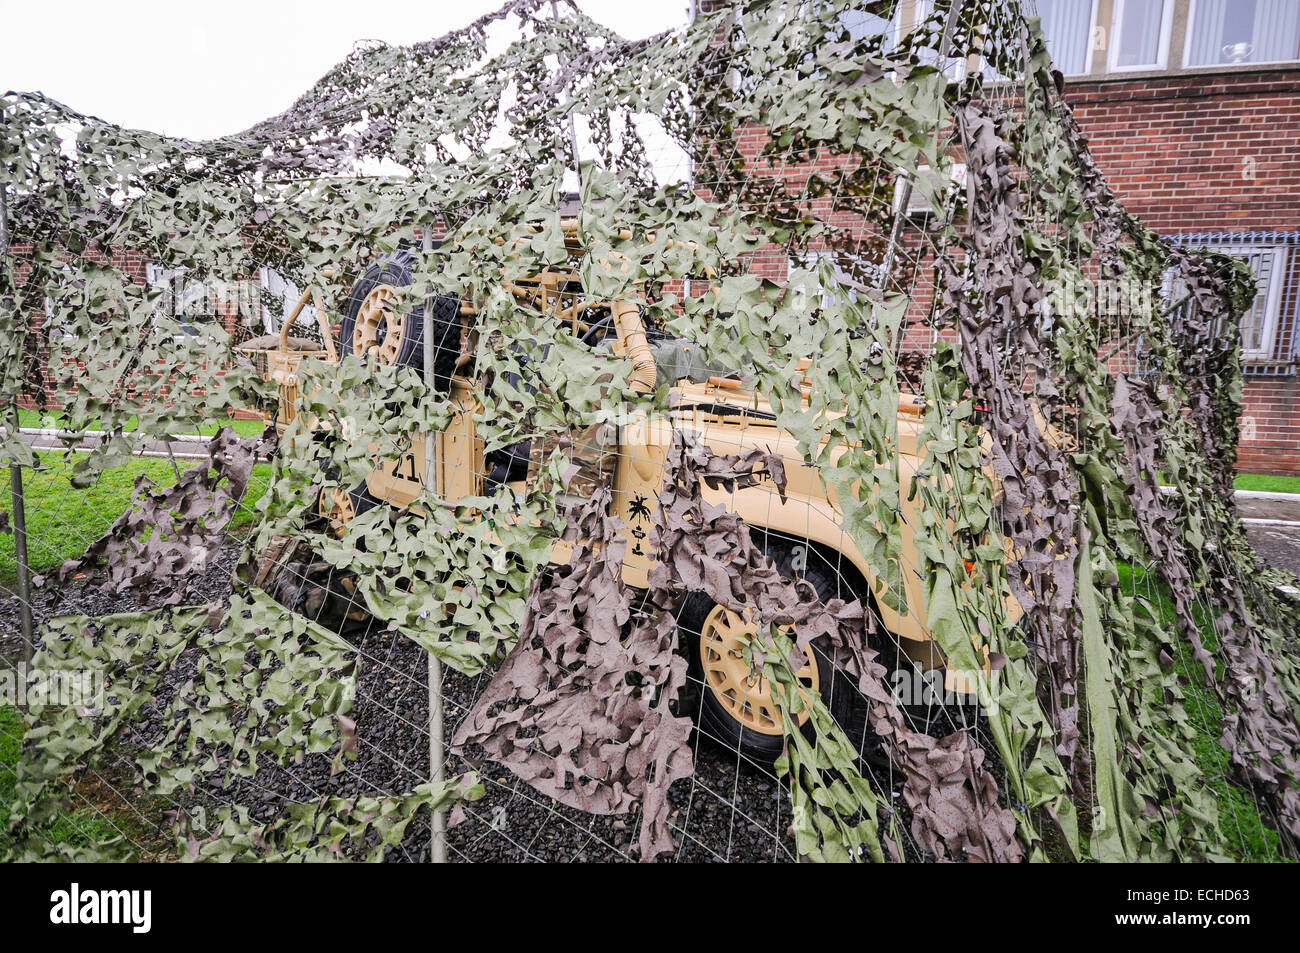 4.5T MWMIK (Mobility Weapon Mounted Installation Kit), also known as Wimiks, hidden by camouflage netting - Stock Image